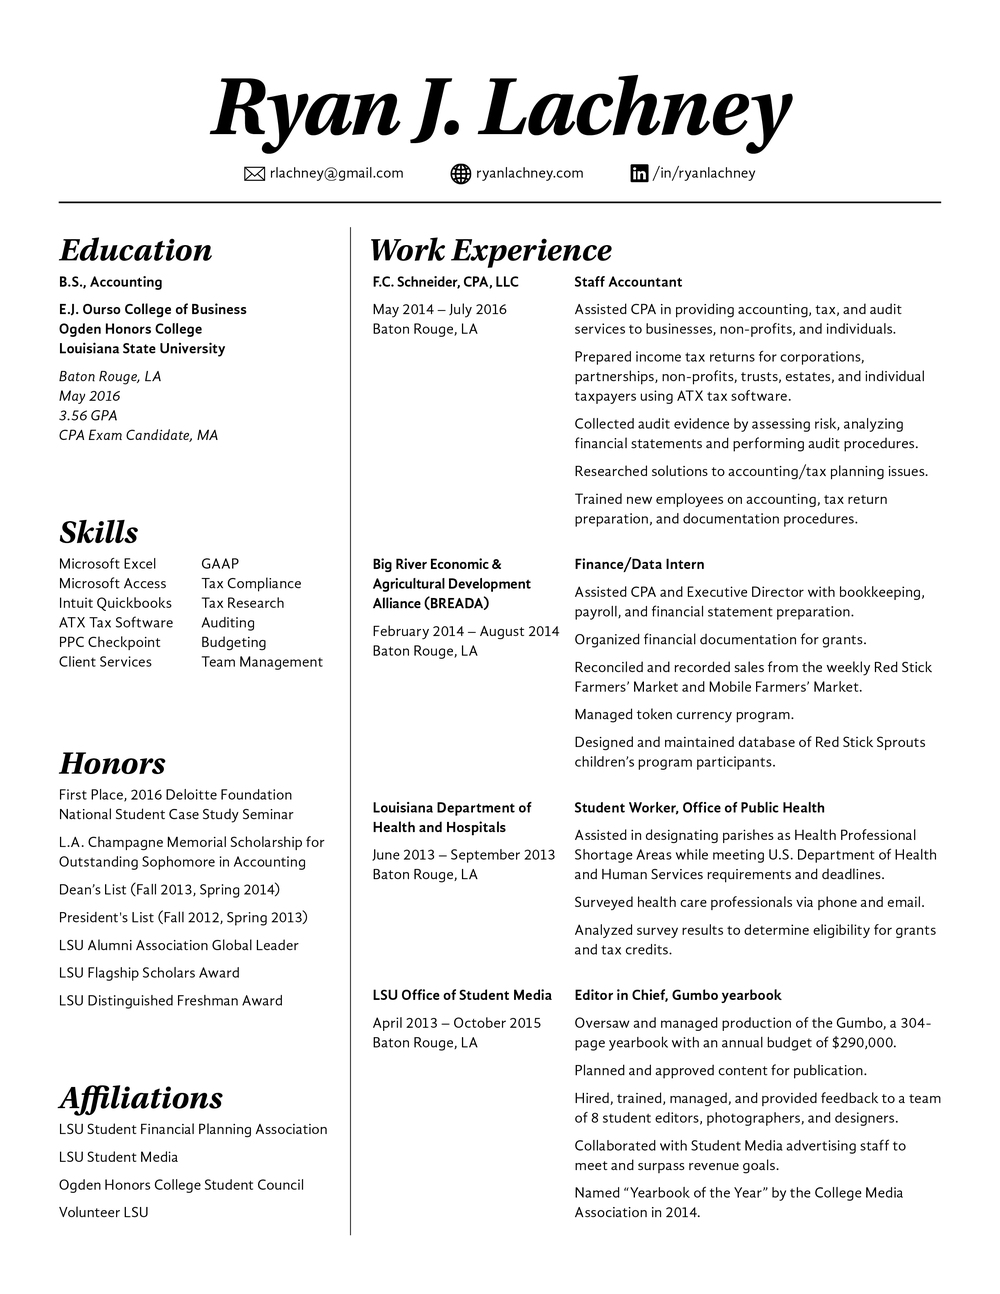 accounting resume cpa candidate ryan lachney raesumae last updated july